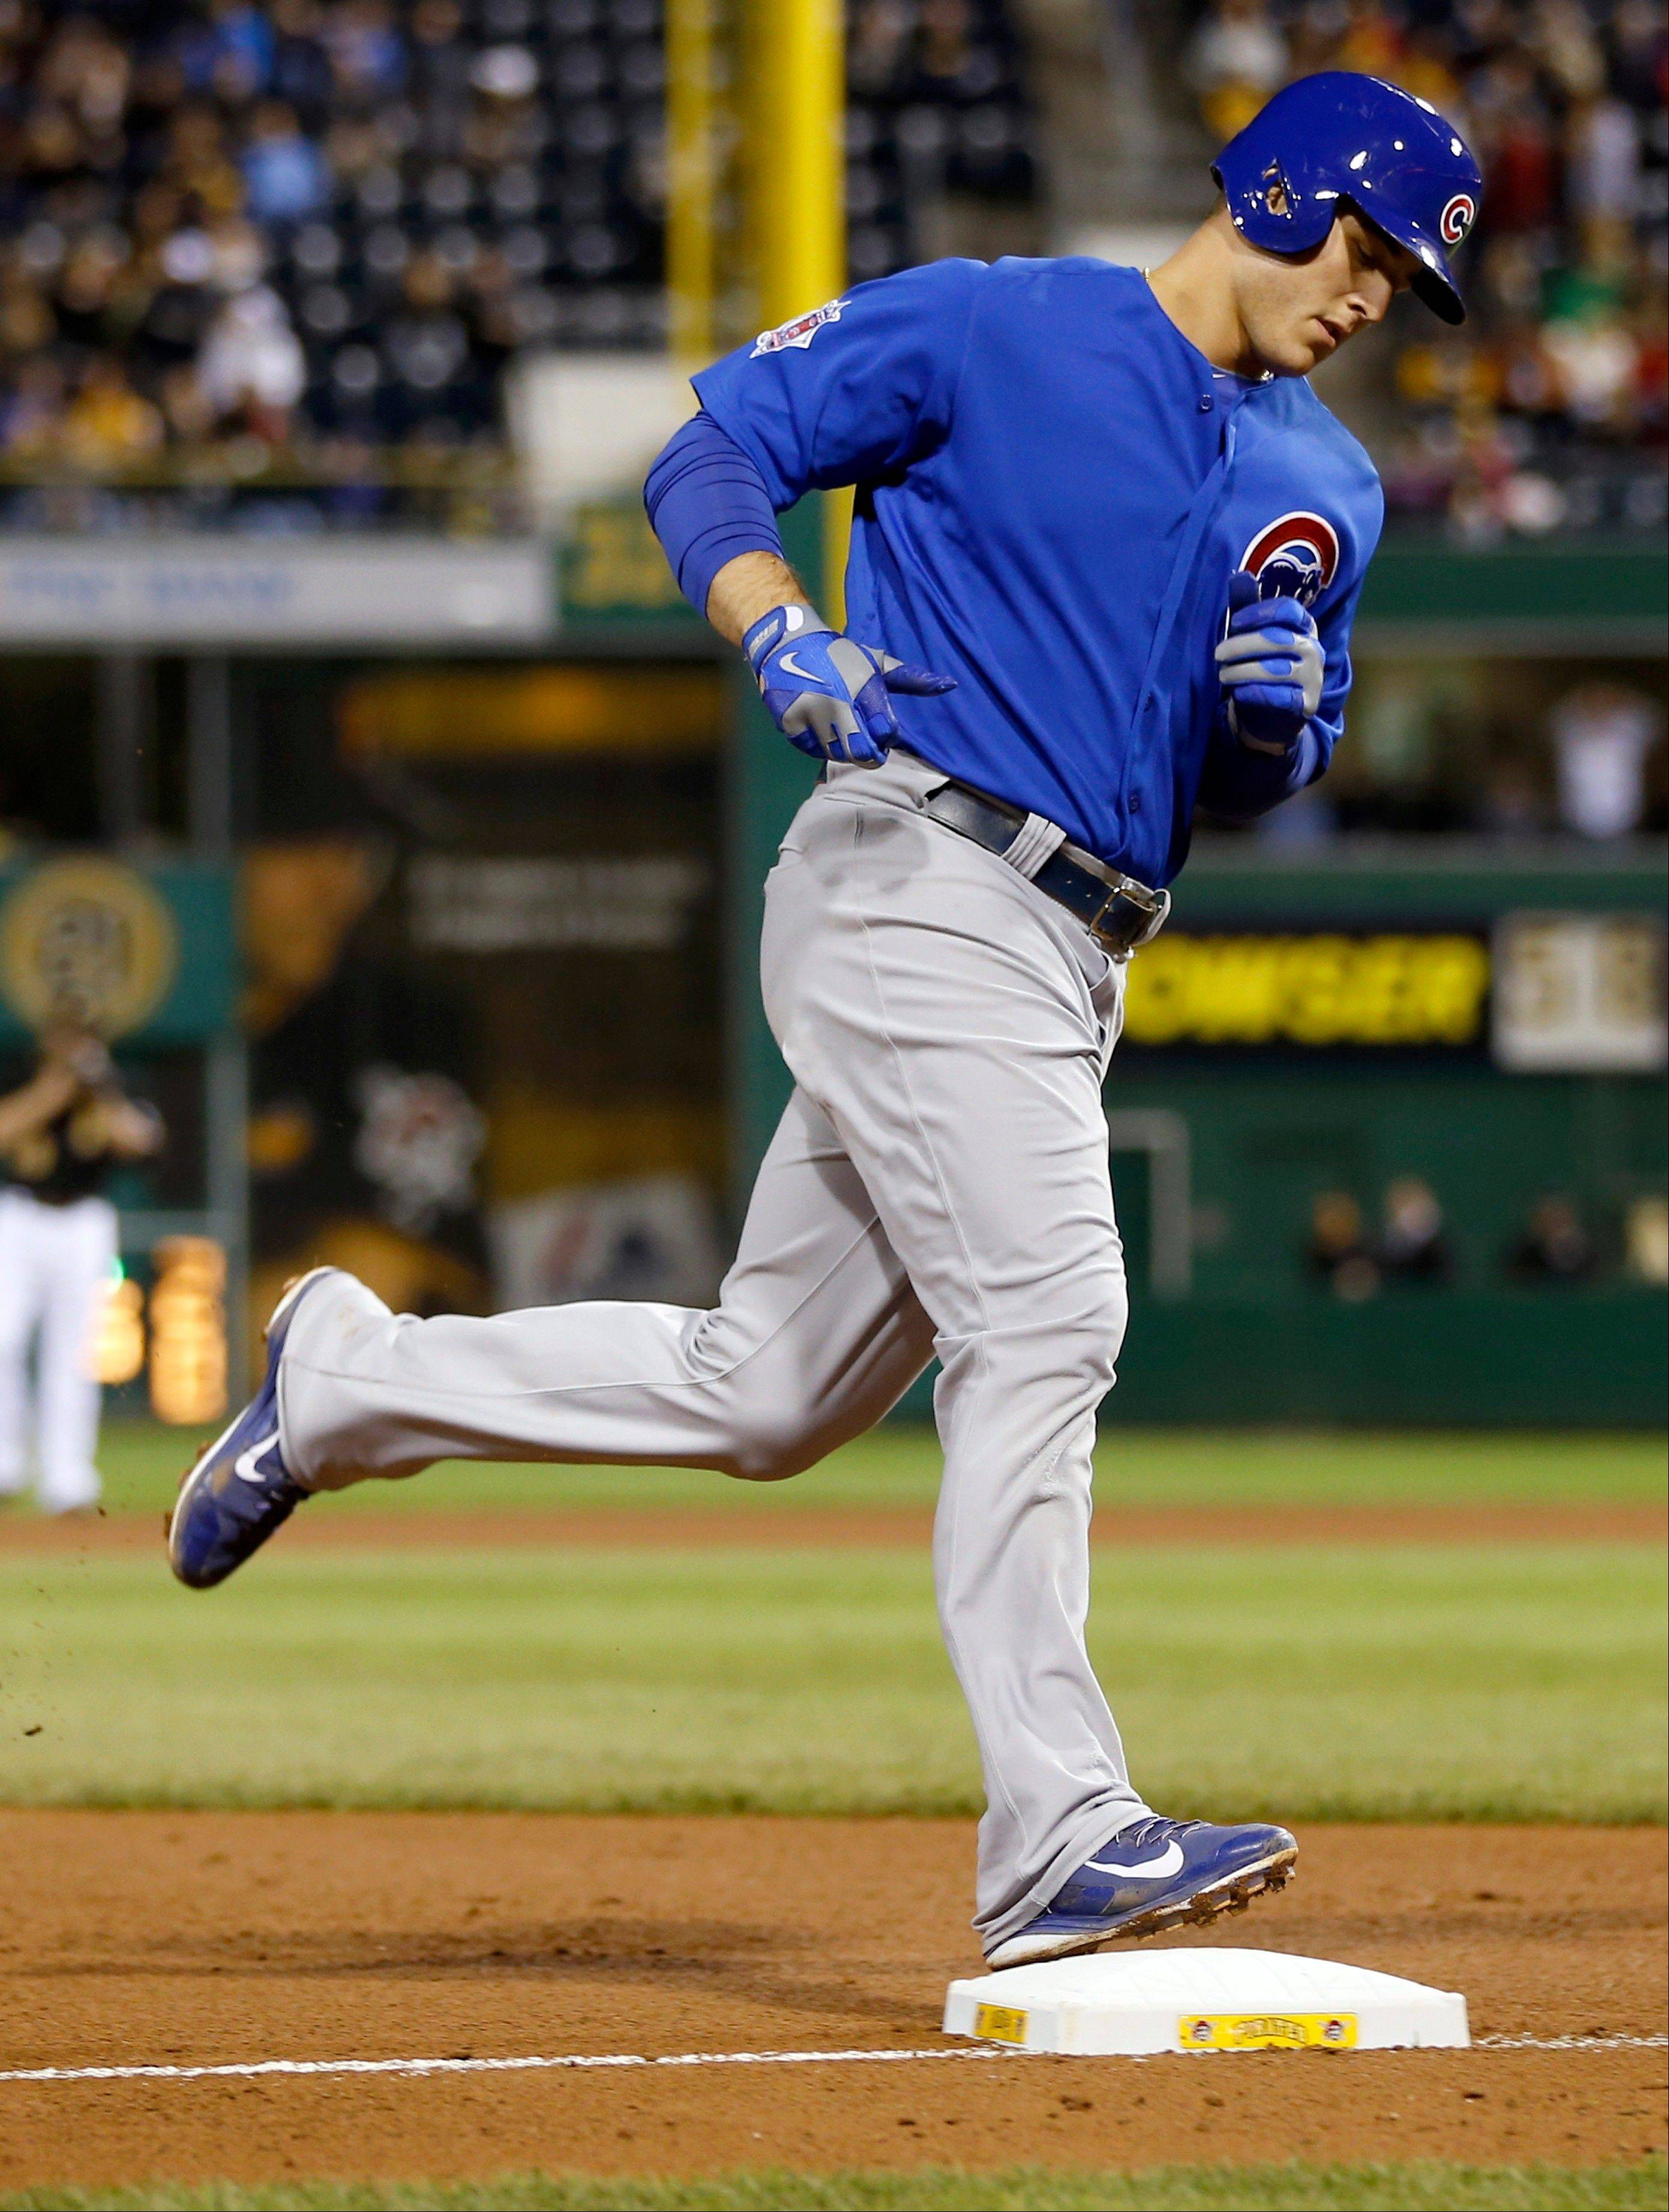 Chicago Cubs' Anthony Rizzo hits third as he rounds the bases after hitting a two-run home run against the Pittsburgh Pirates in the seventh inning of the baseball game on Friday, Sept. 13, 2013, in Pittsburgh. The Cubs won 5-4.